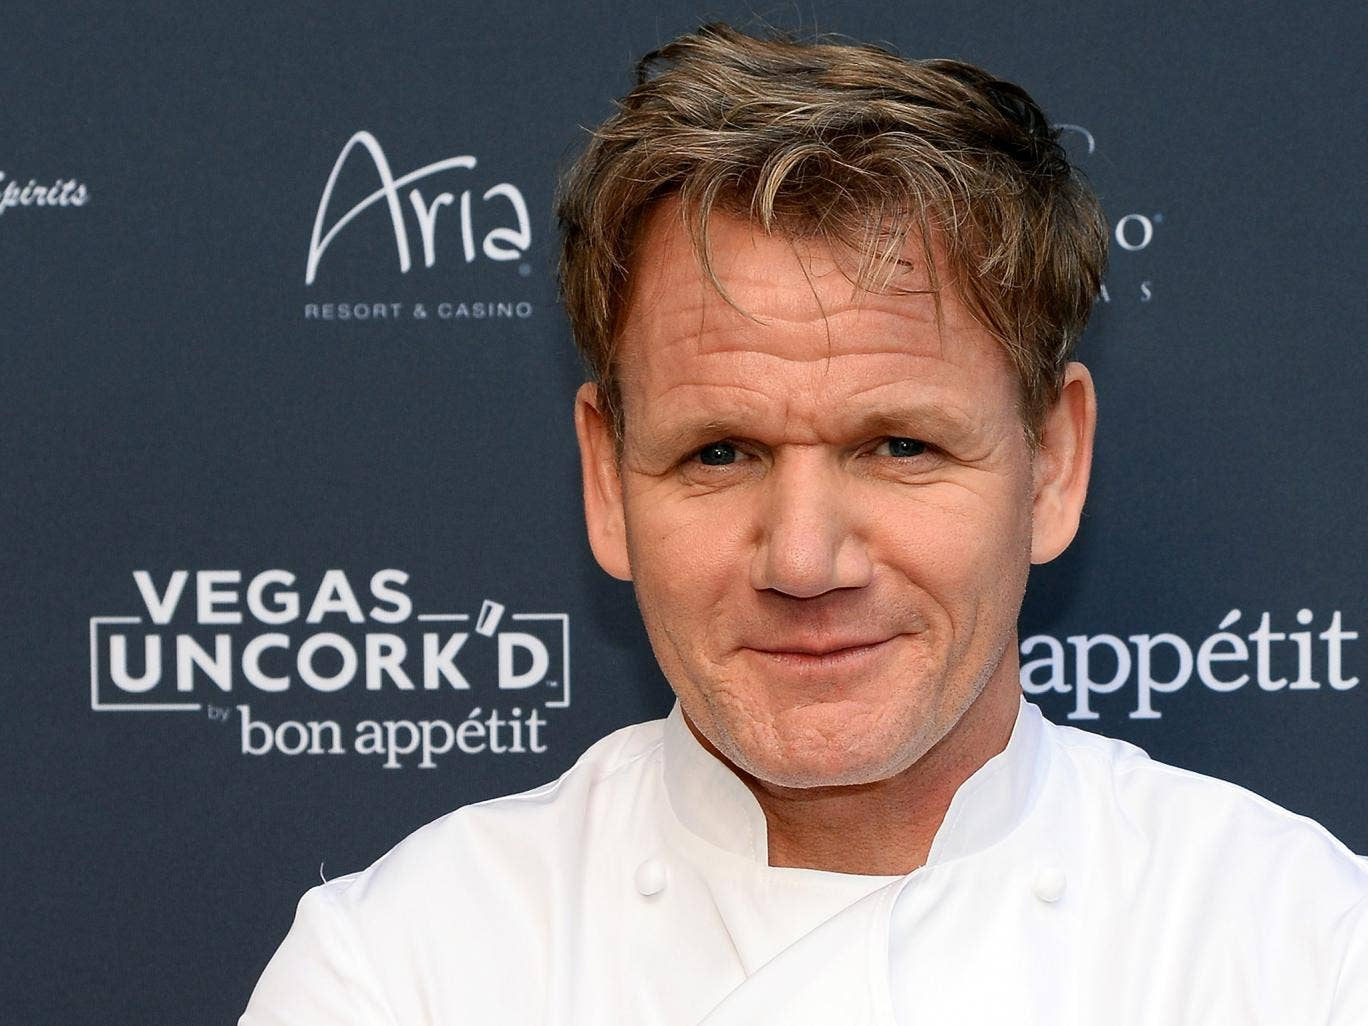 gordan ramsay a short biography Who could get away with teasing gordon ramsay about his  a tv chef - on food , family and life in la with their close friends the beckhams.